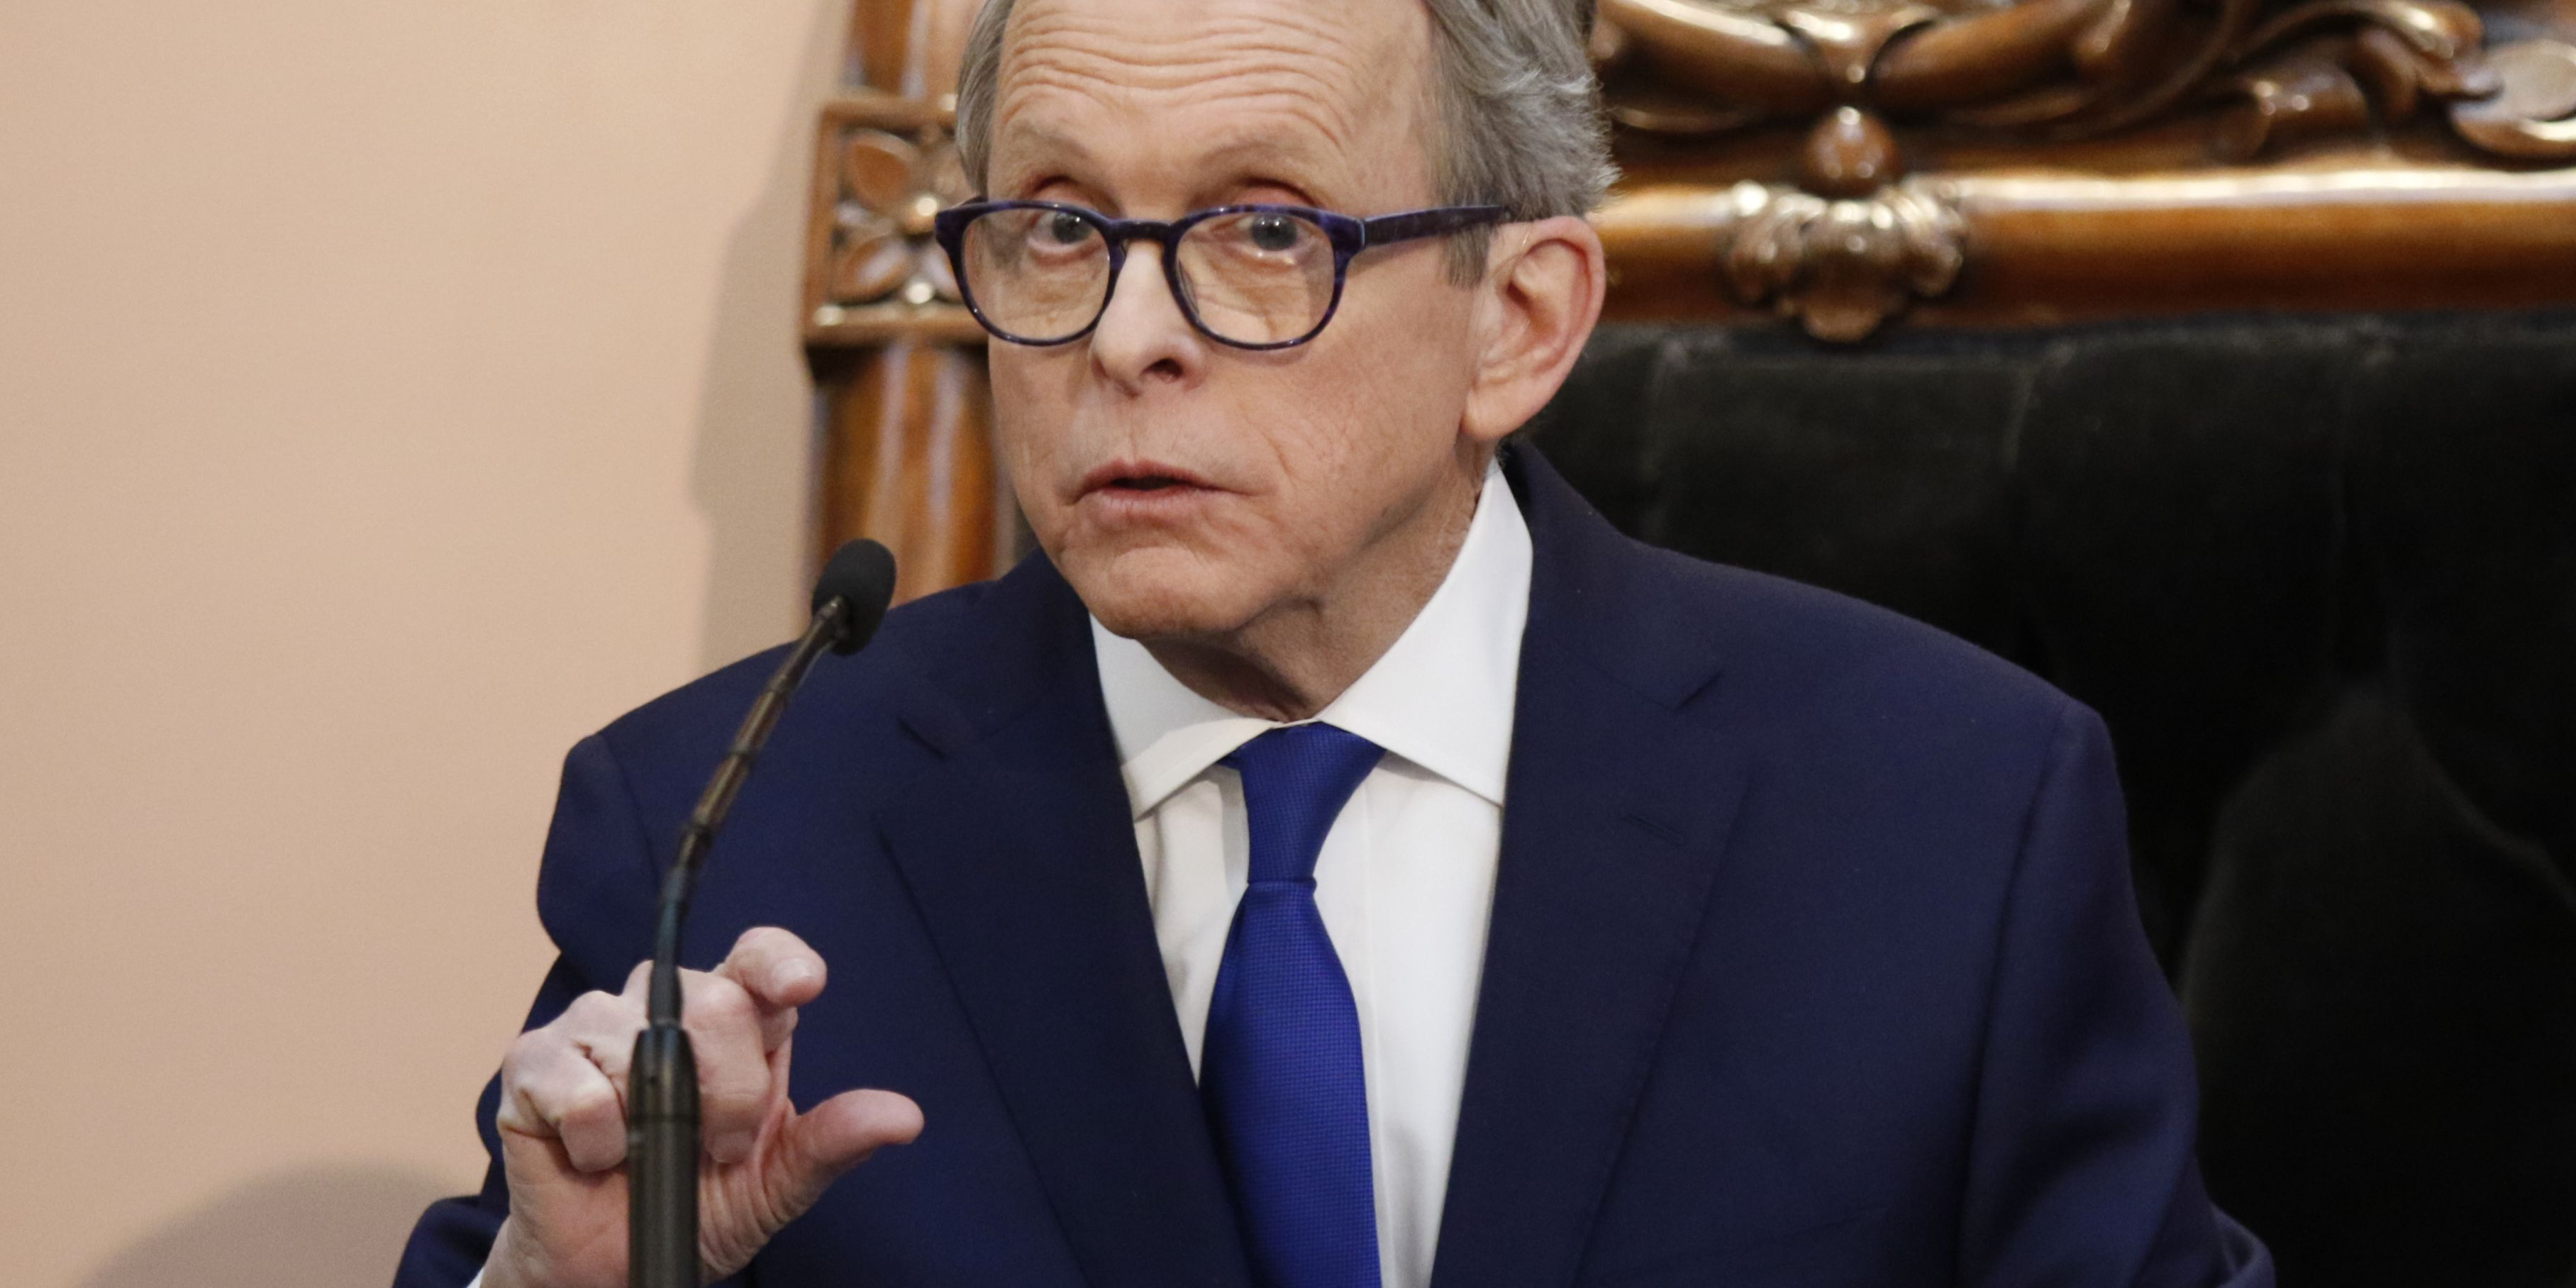 Gov. DeWine approves budget that includes expanded Ohio Motion Picture Tax Credit